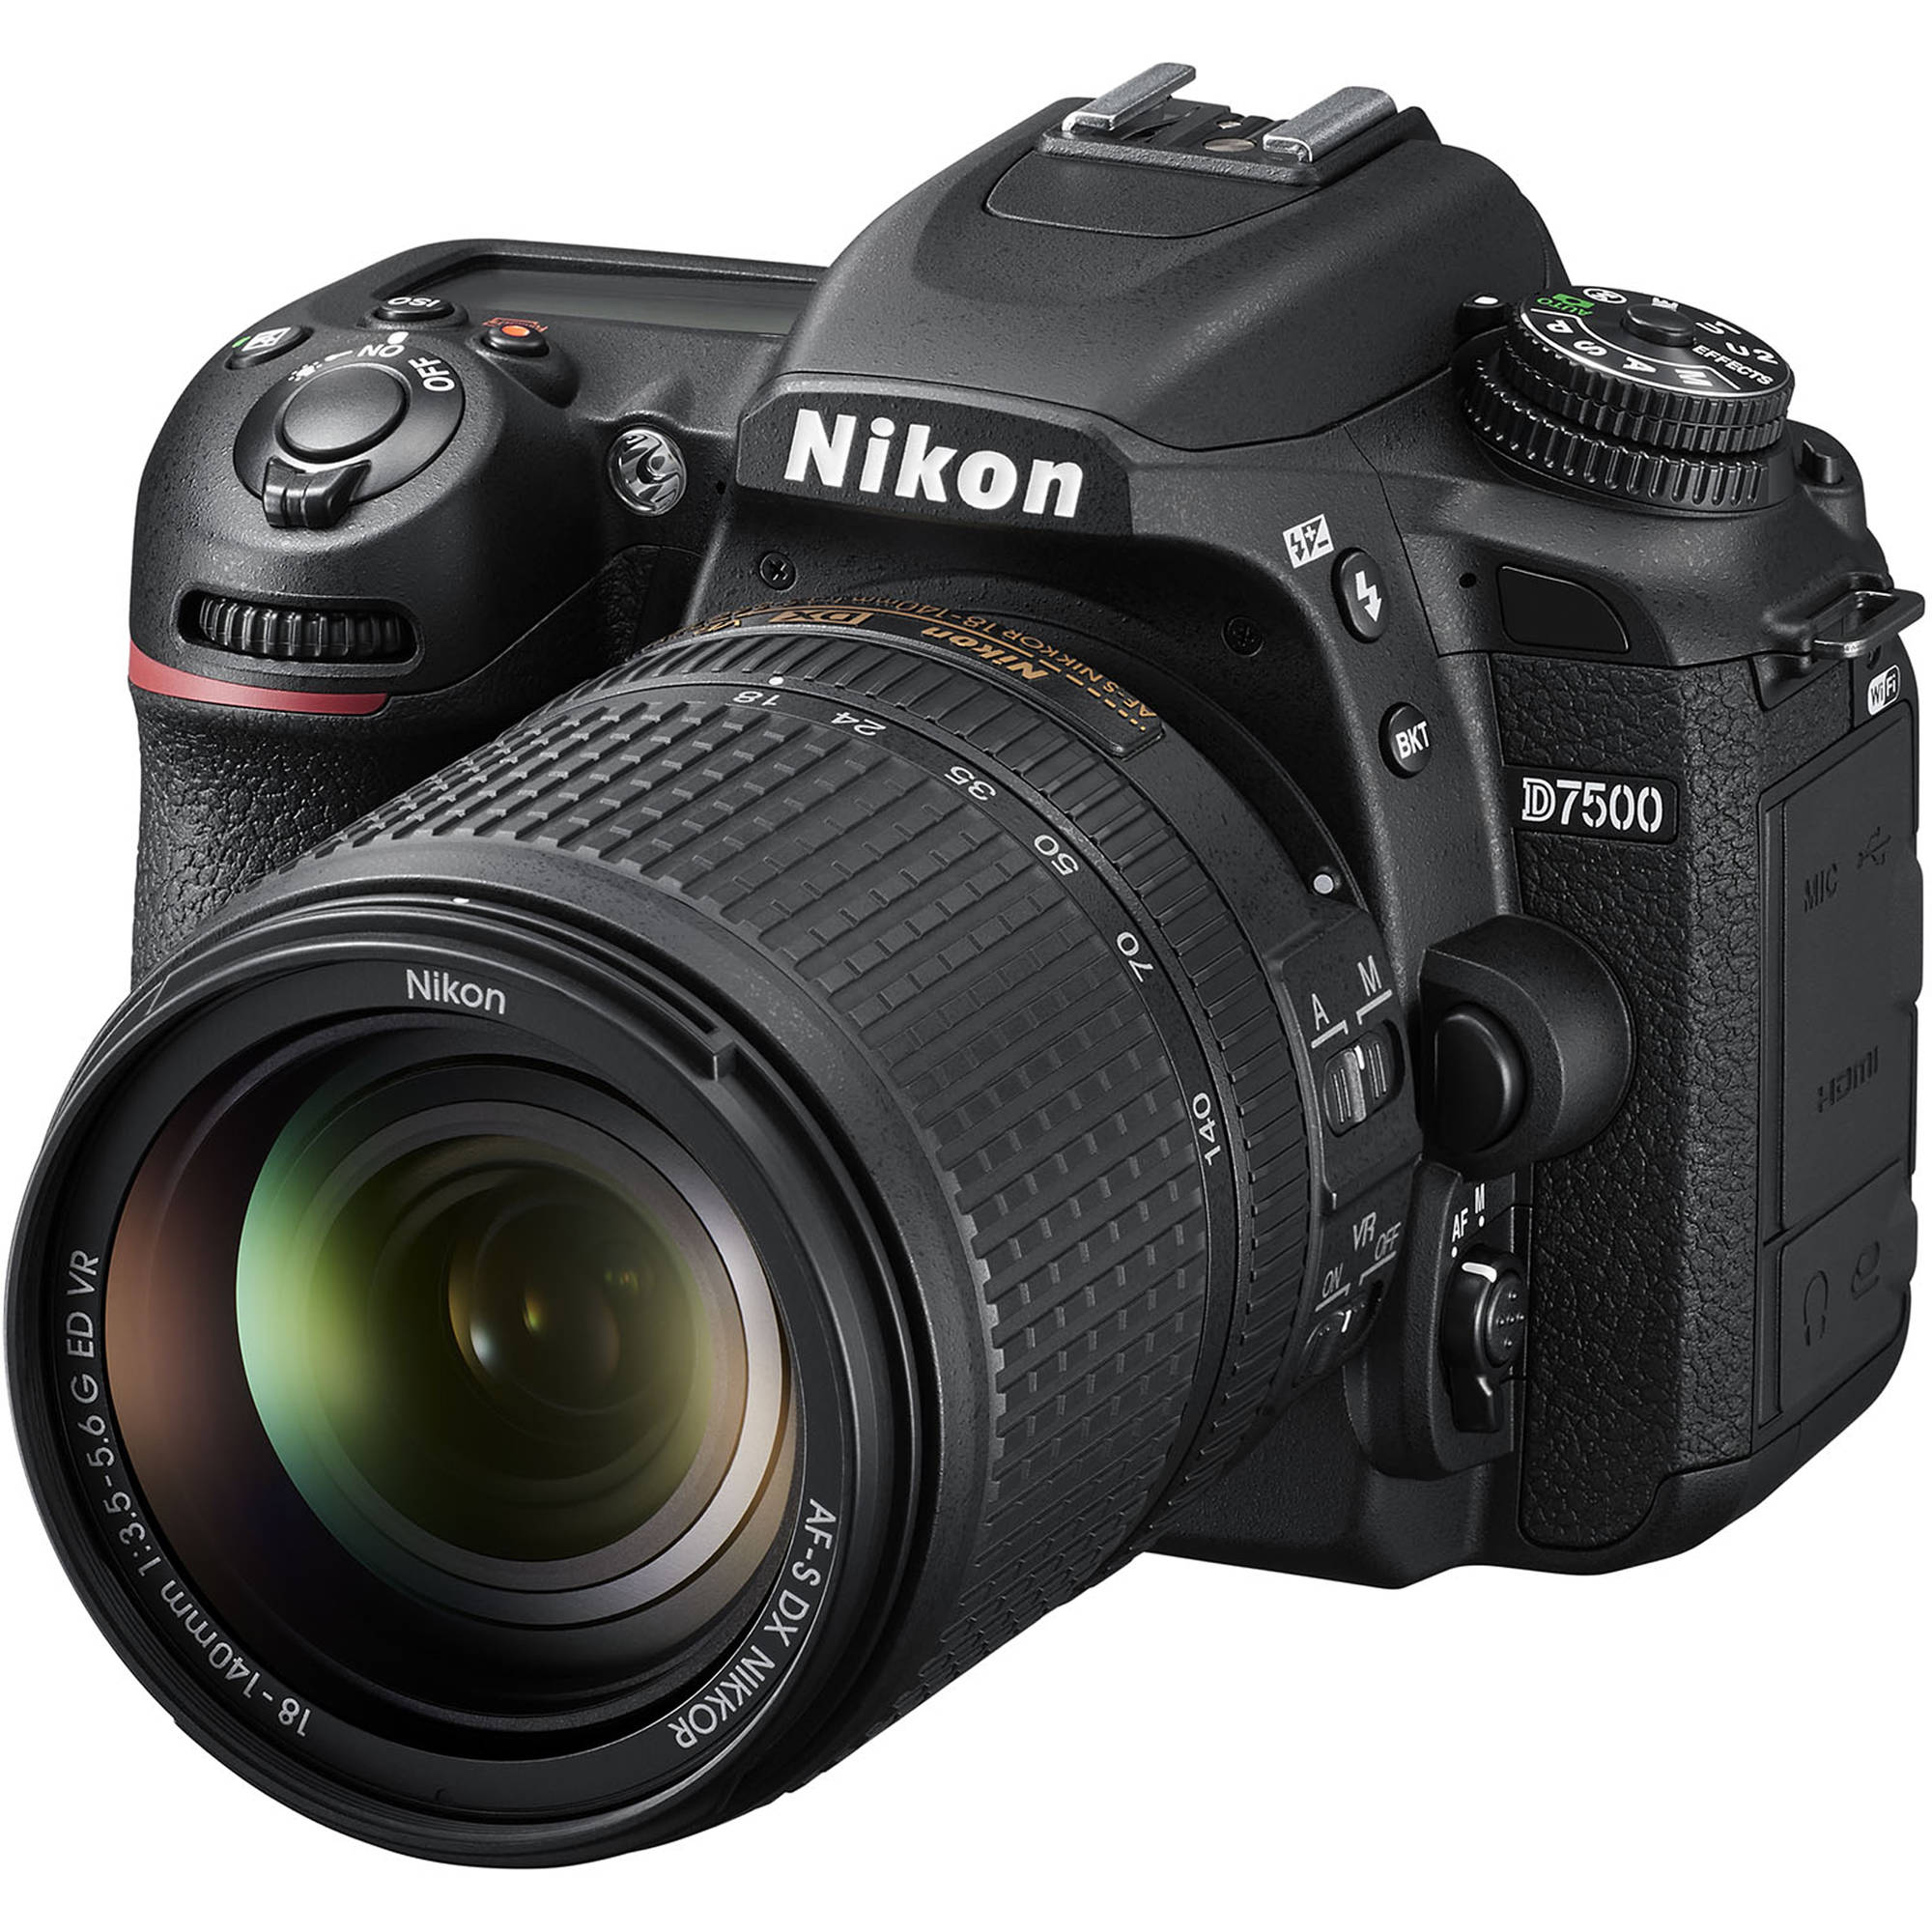 Nikon D7500 DSLR Camera with 18-140mm Lens 1582 B&H Photo Video